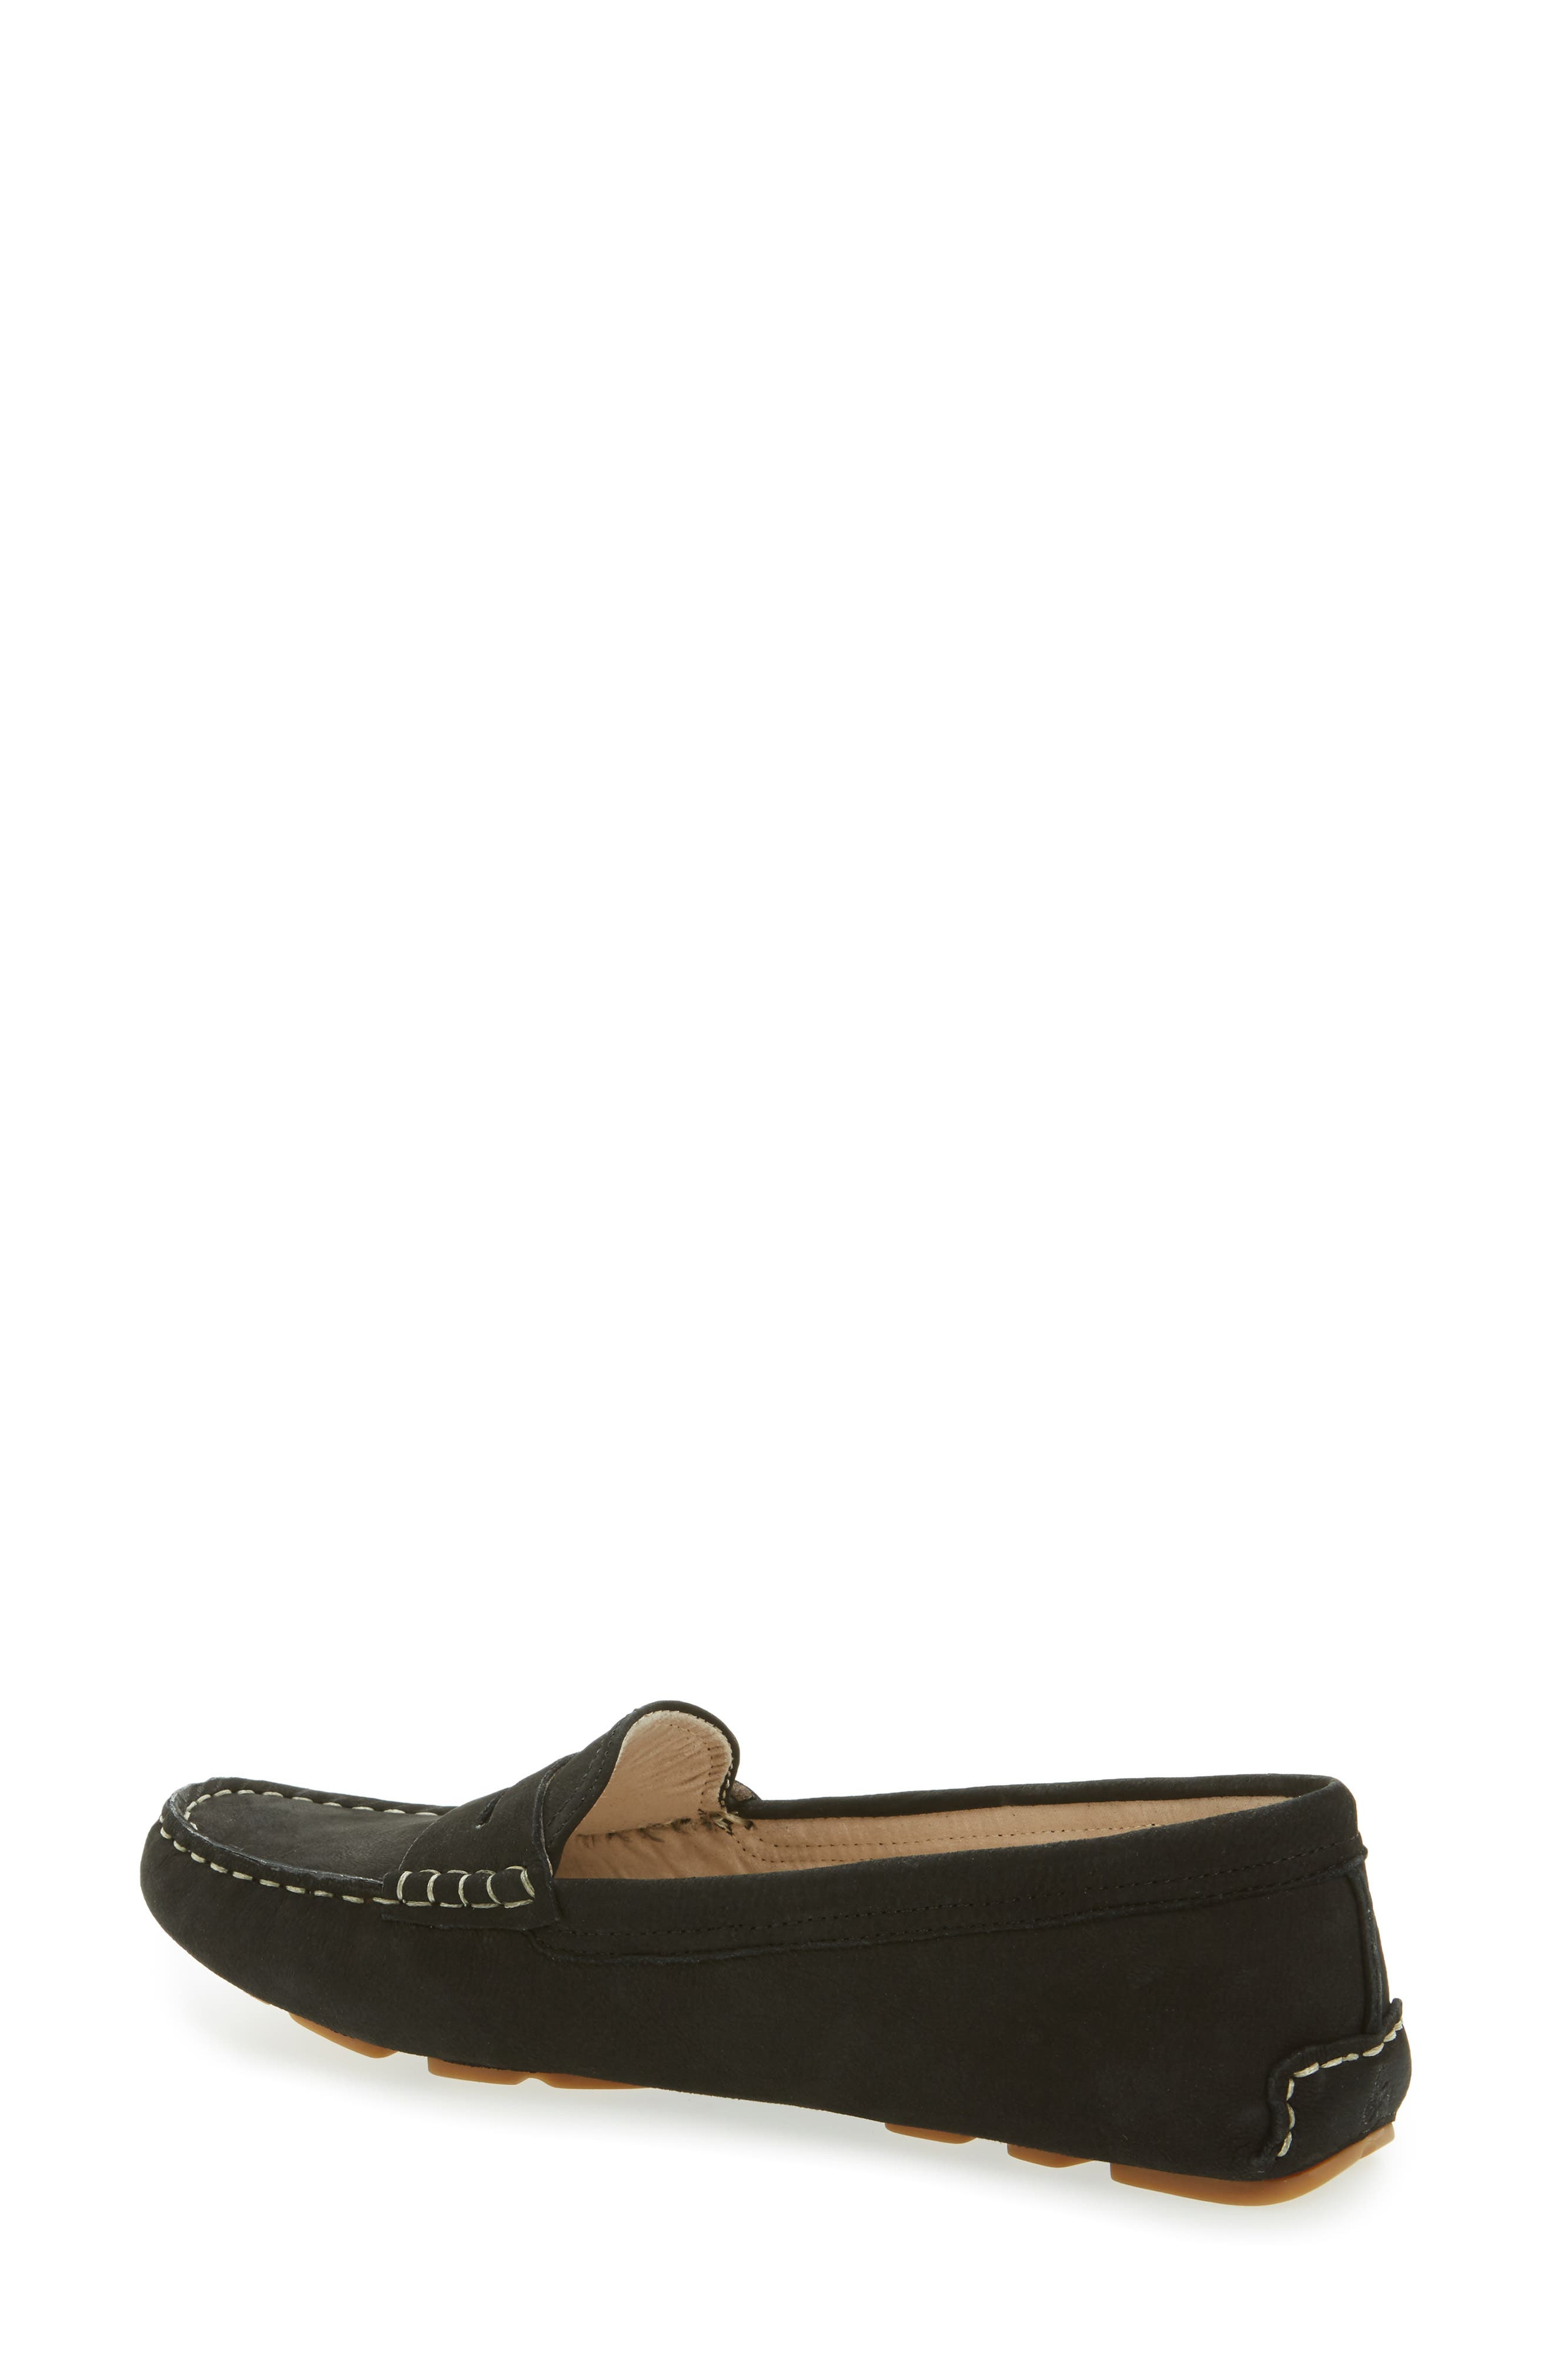 Filly Moc Toe Loafer,                             Alternate thumbnail 2, color,                             001